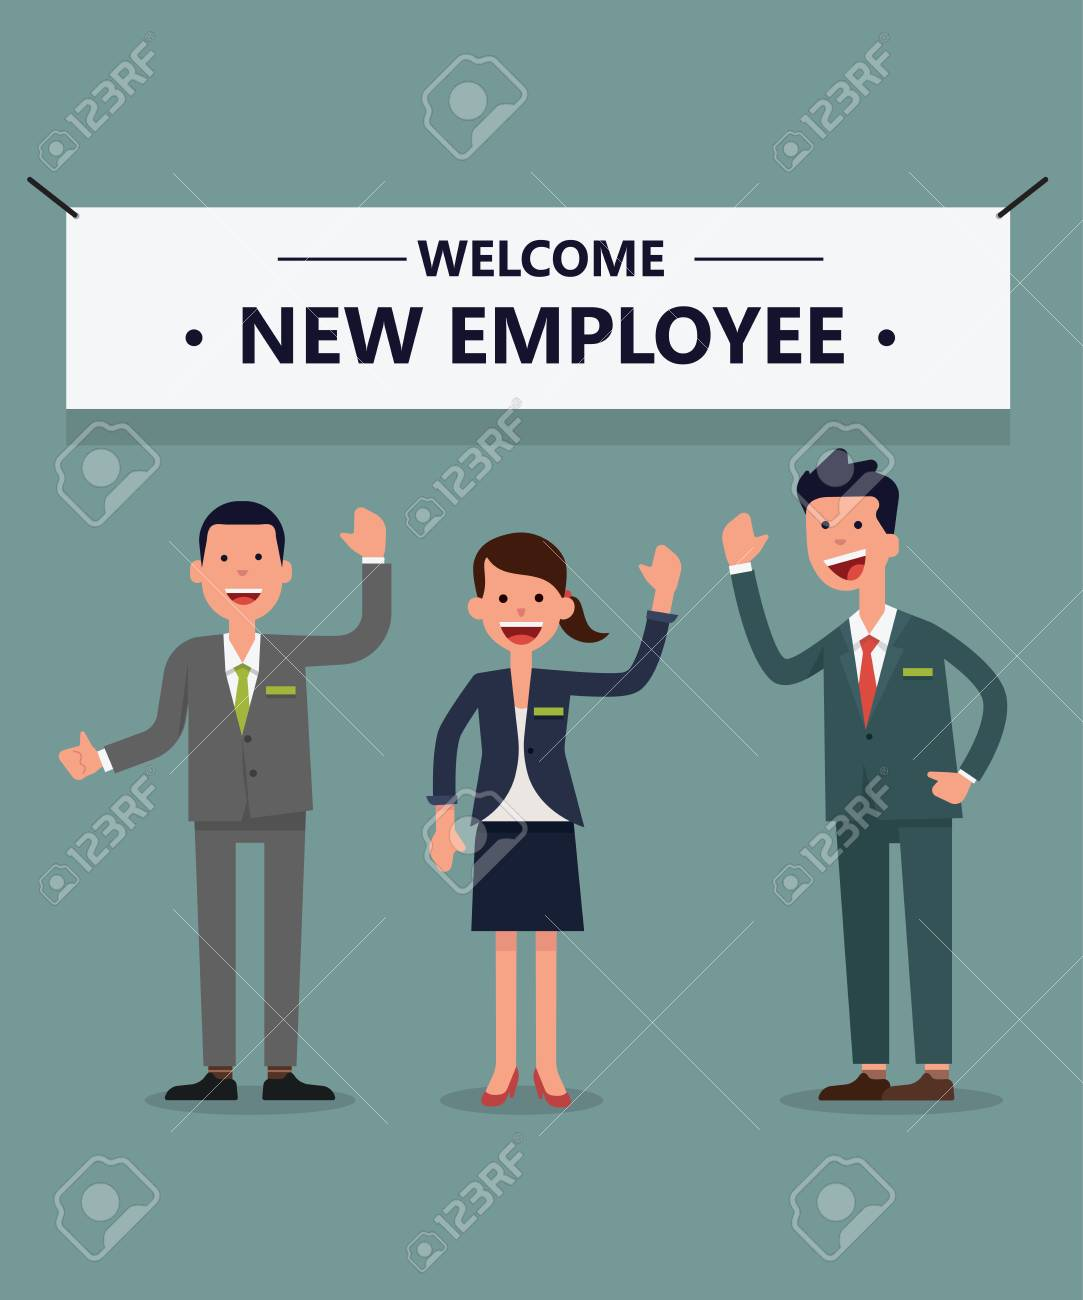 Welcome new employee royalty free cliparts vectors and stock welcome new employee thecheapjerseys